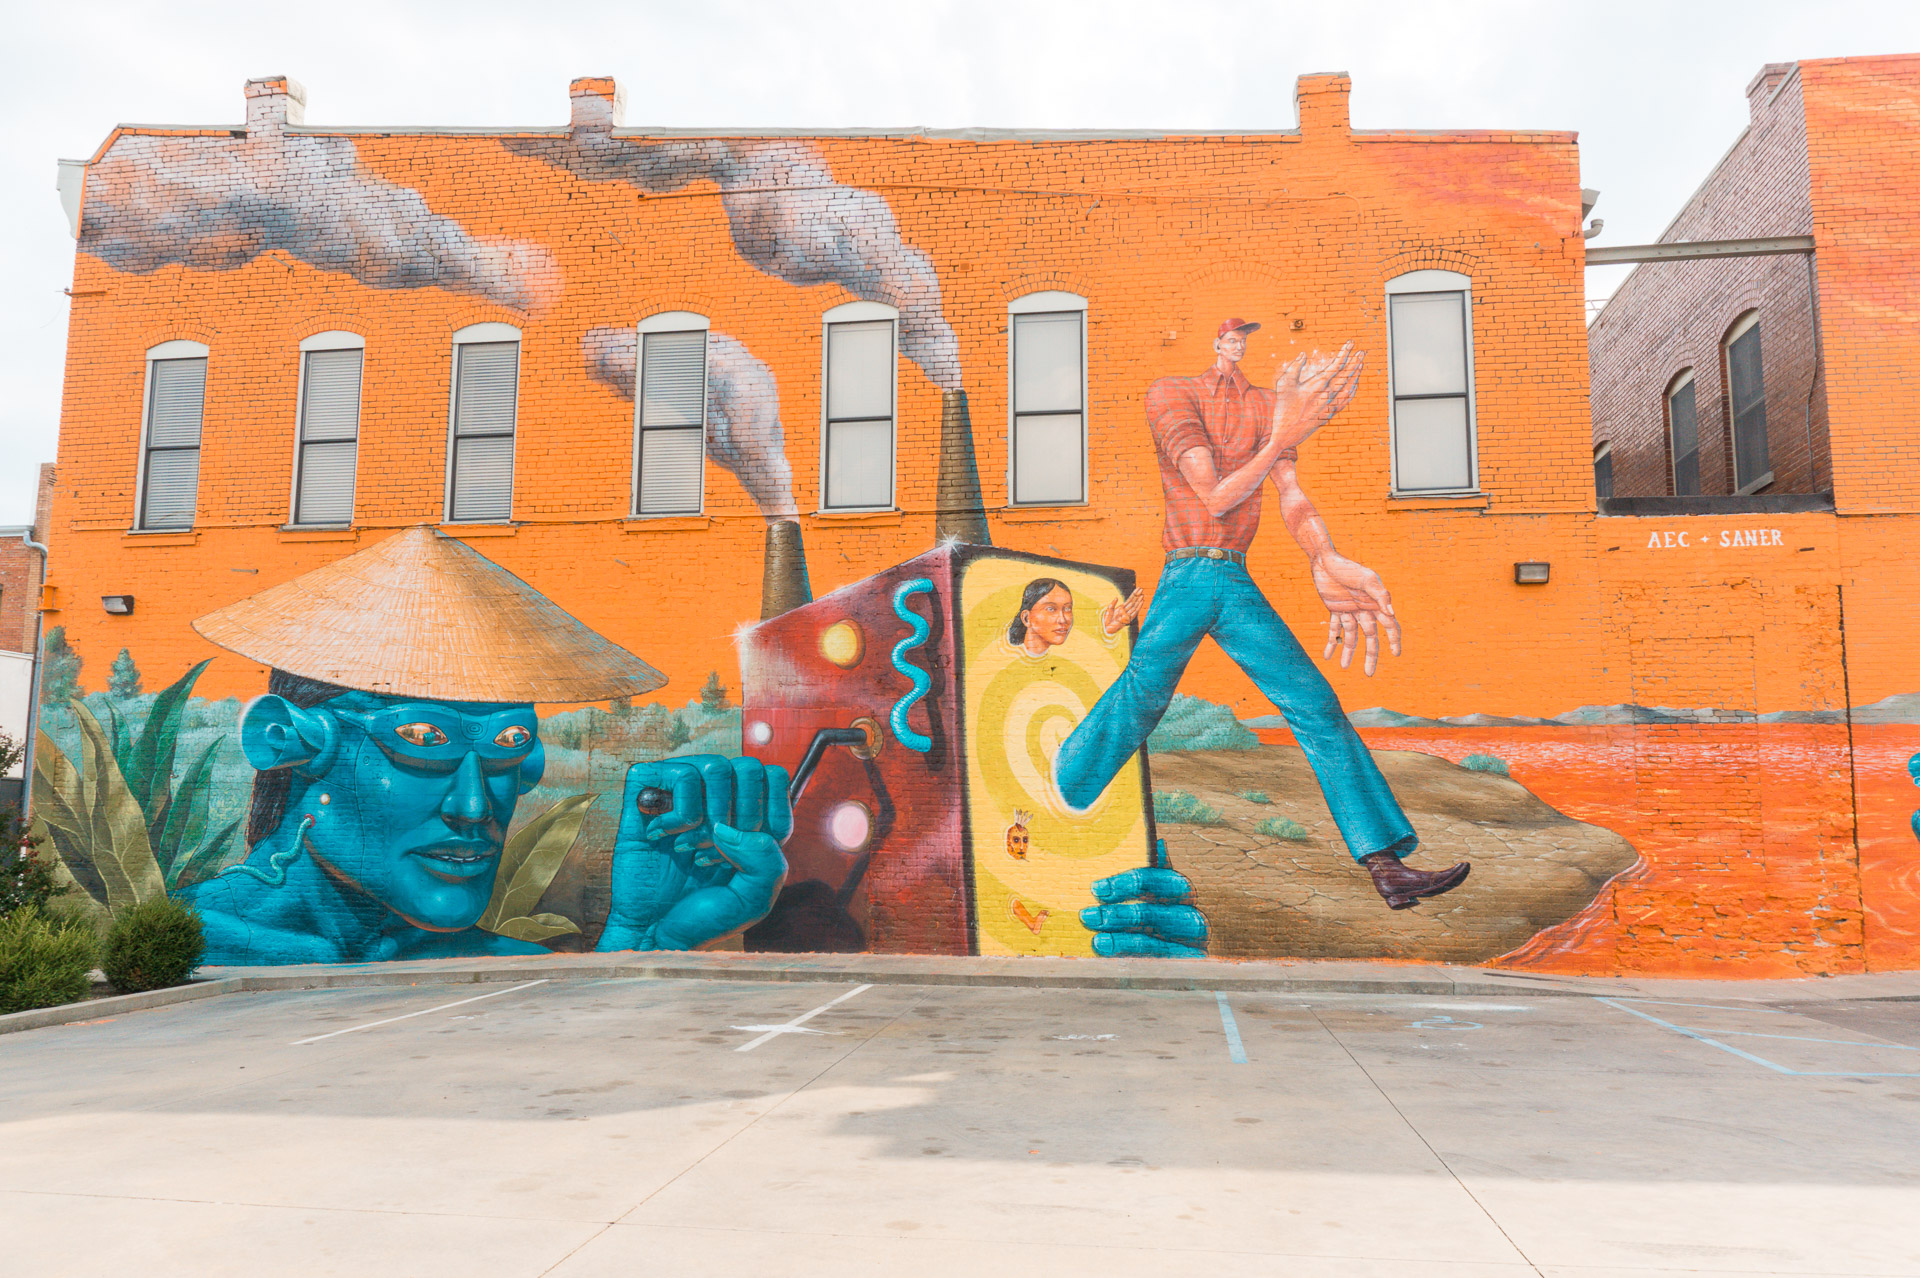 The Unexpected Murals Project - Fort Smith, Arkansas